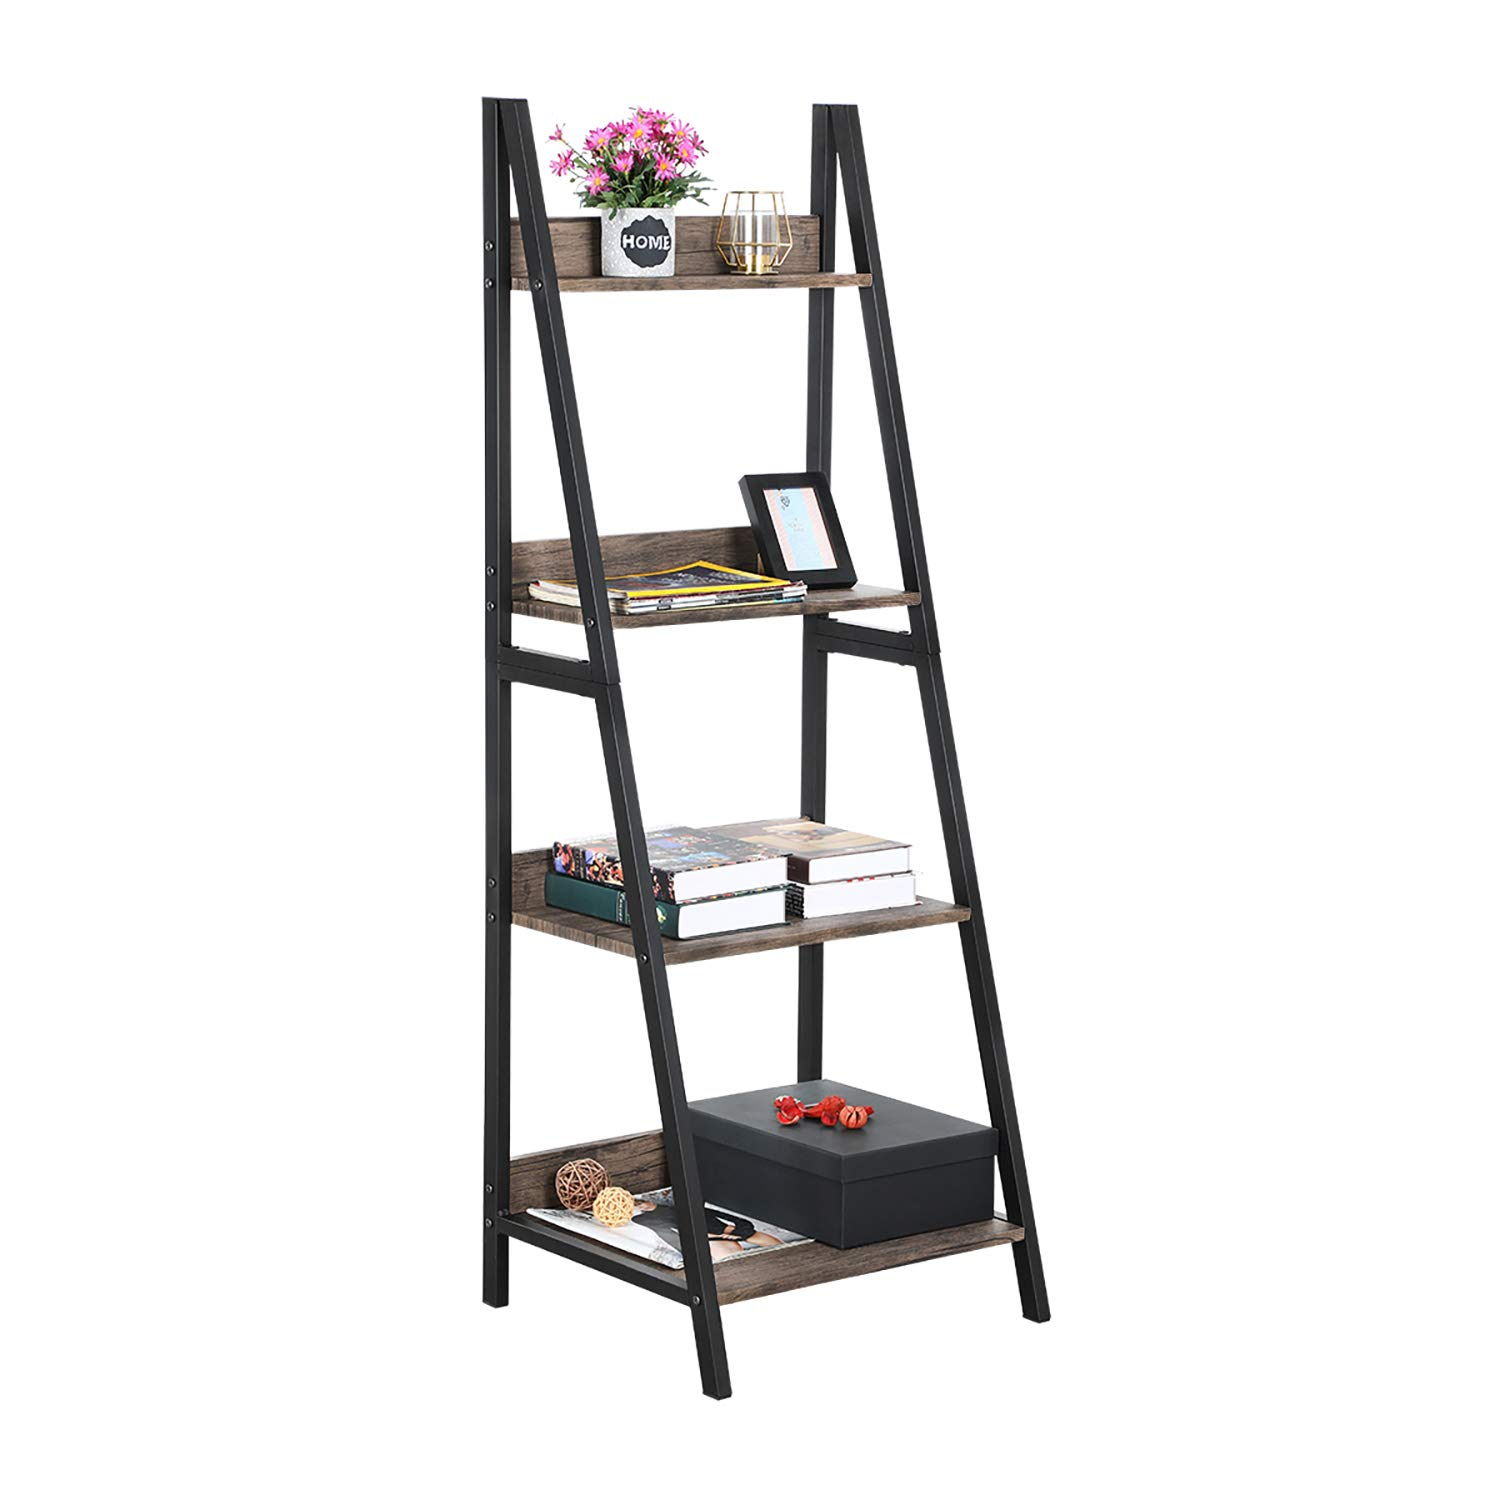 GreenForest Ladder Shelf 4 Tier Bookcase Metal and Wood Bookshelf Home Office Storage Rack Shelf Plant Stand, Walnut by GreenForest